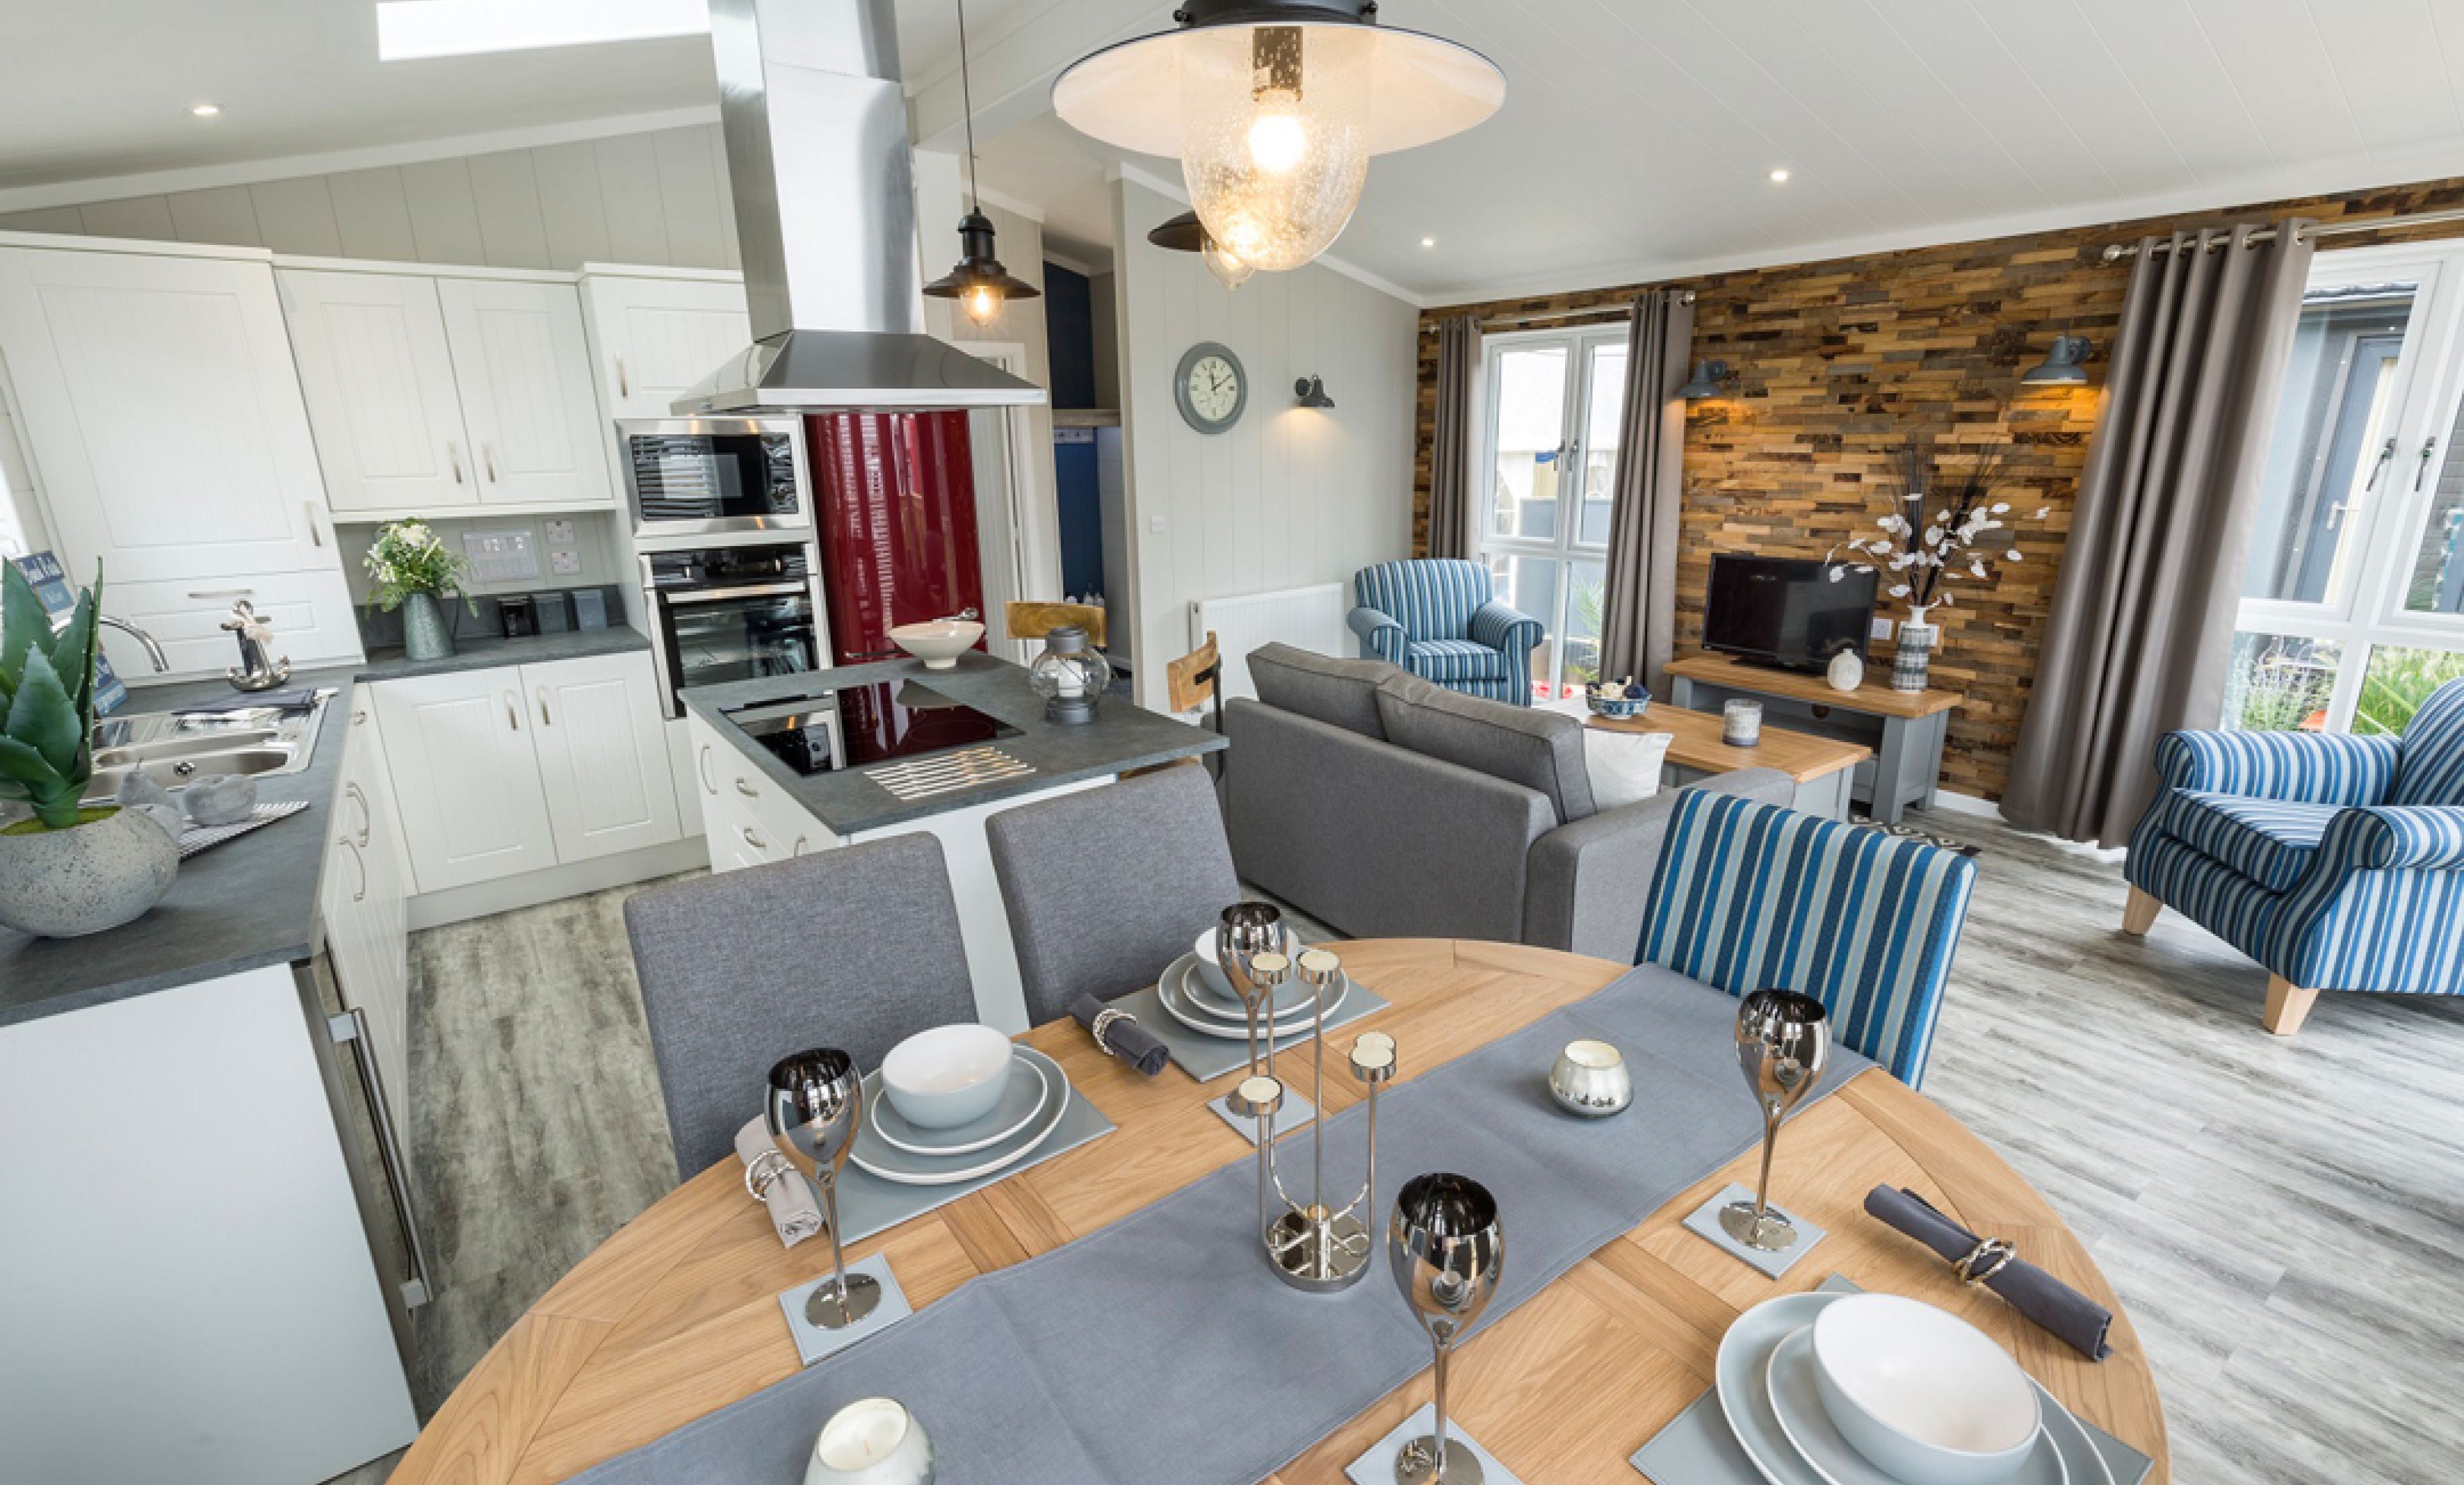 The Country Lodge - Coastal Dining Room